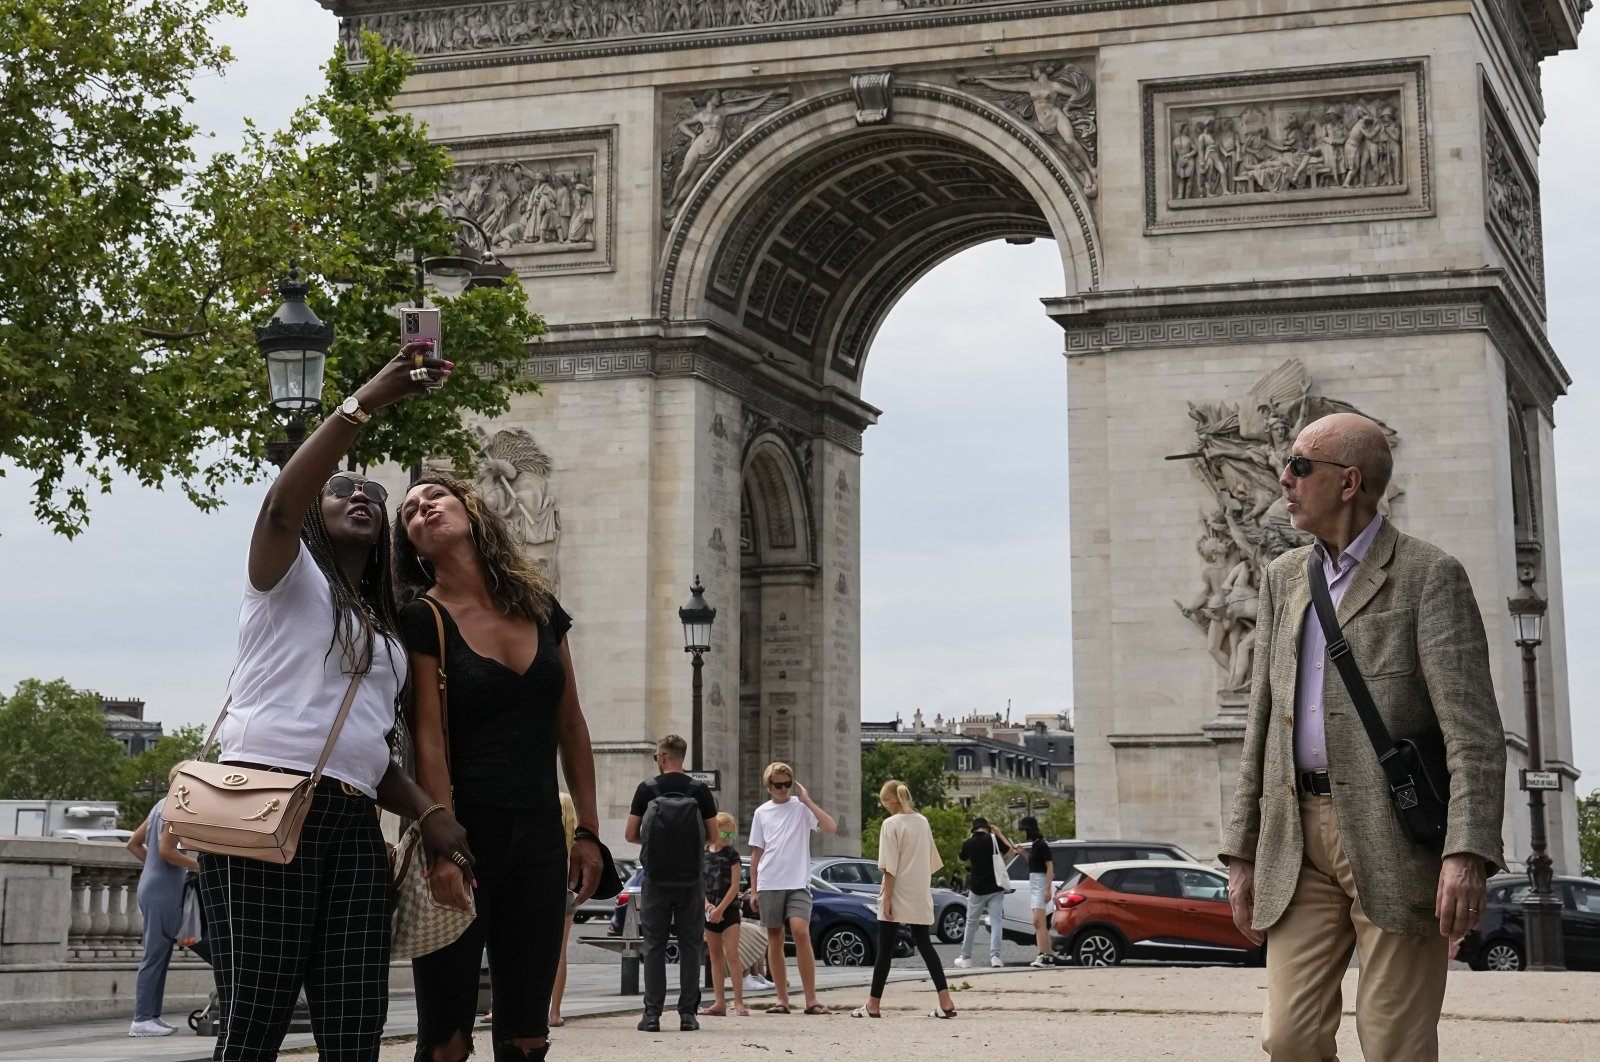 People take a selfie with the Arc de Triomphe in the background at the Champs Elysees avenue in Paris, France, June 17, 2021. (AP Photo)